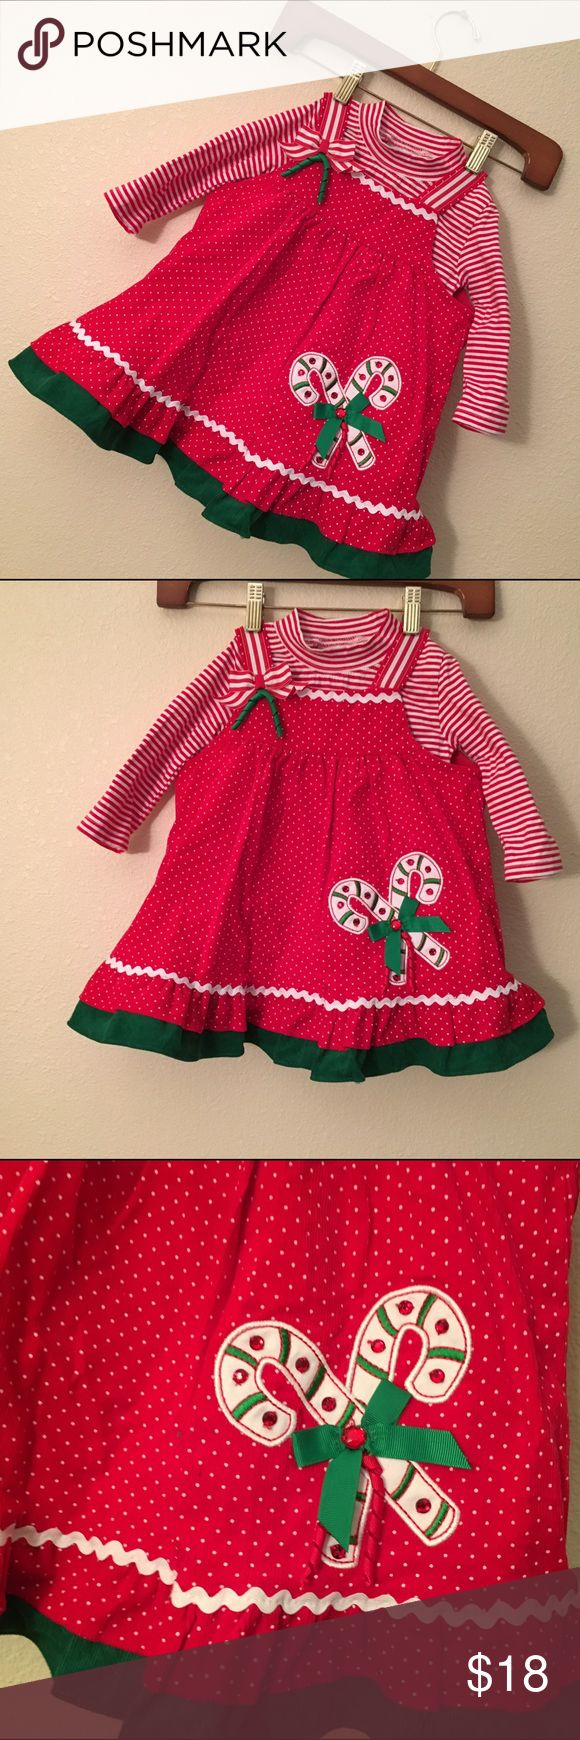 Rare editions Christmas jumper dress 18m toddler Two piece jumper dress and bodysuit top size 18 months in excellent condition Rare Editions Dresses